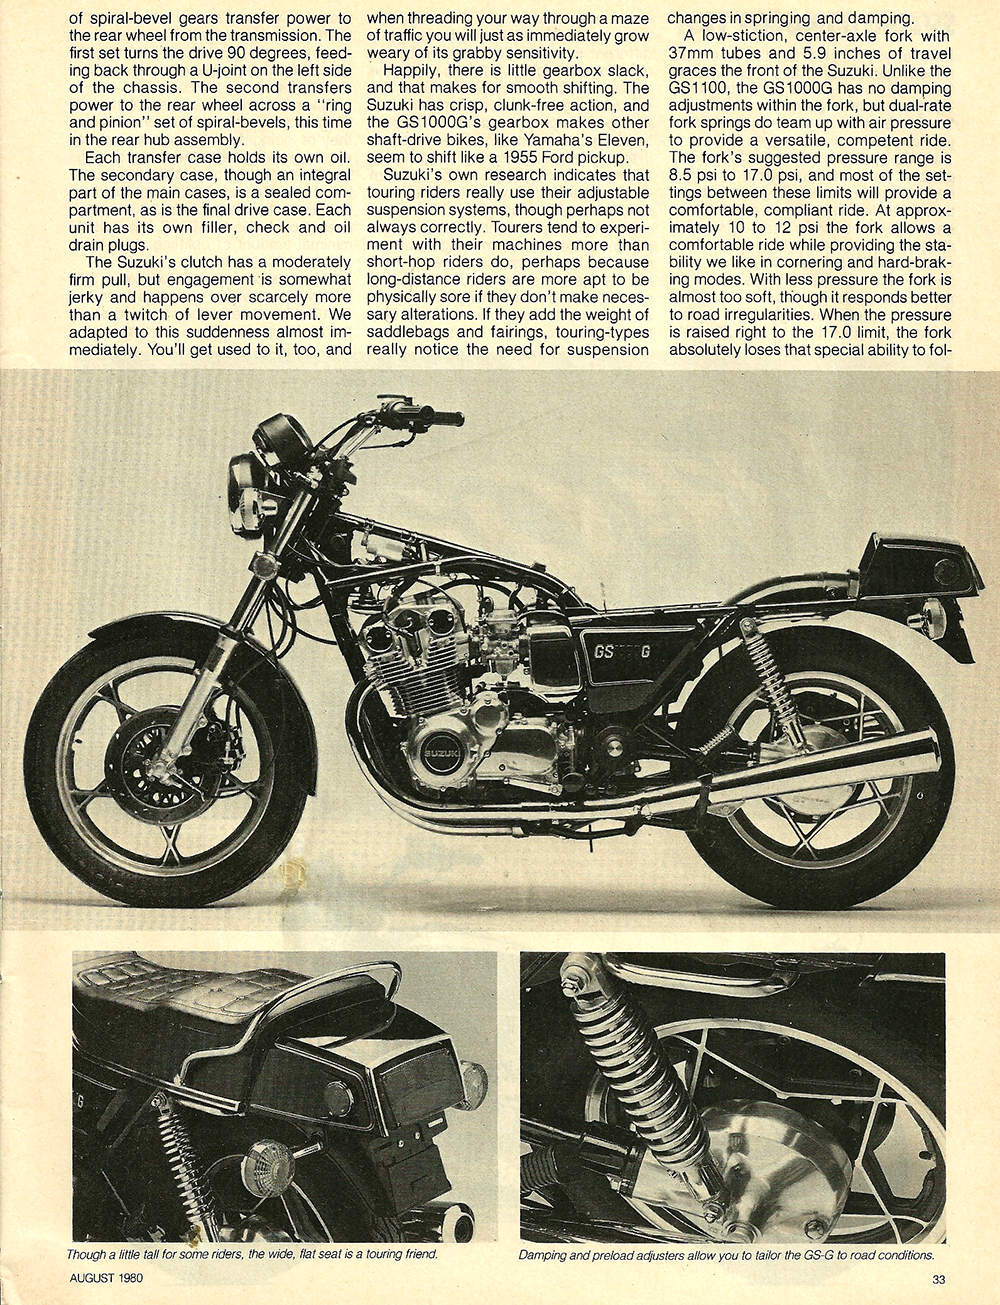 1980 Suzuki GS1000GT road test 4.jpg